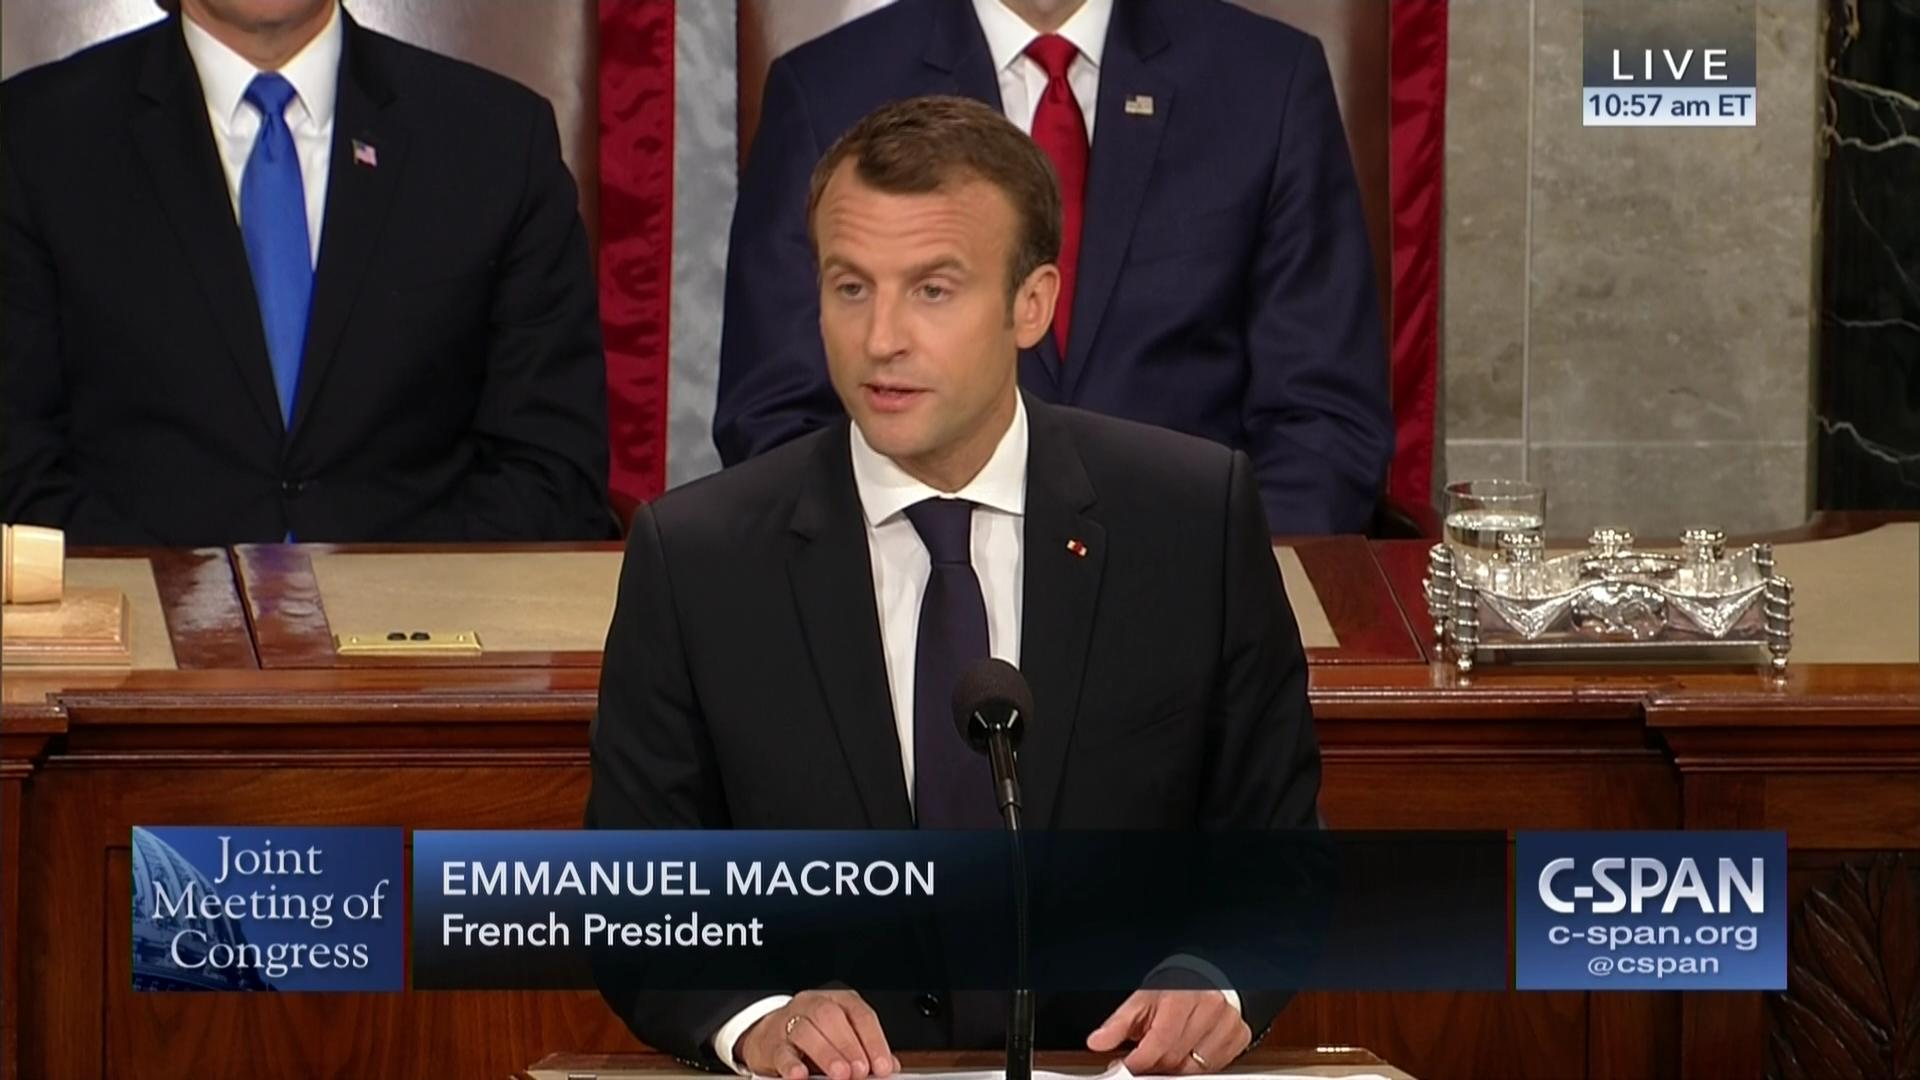 Emmanuel Macron Address To Joint Meeting Of Congress C Span Org